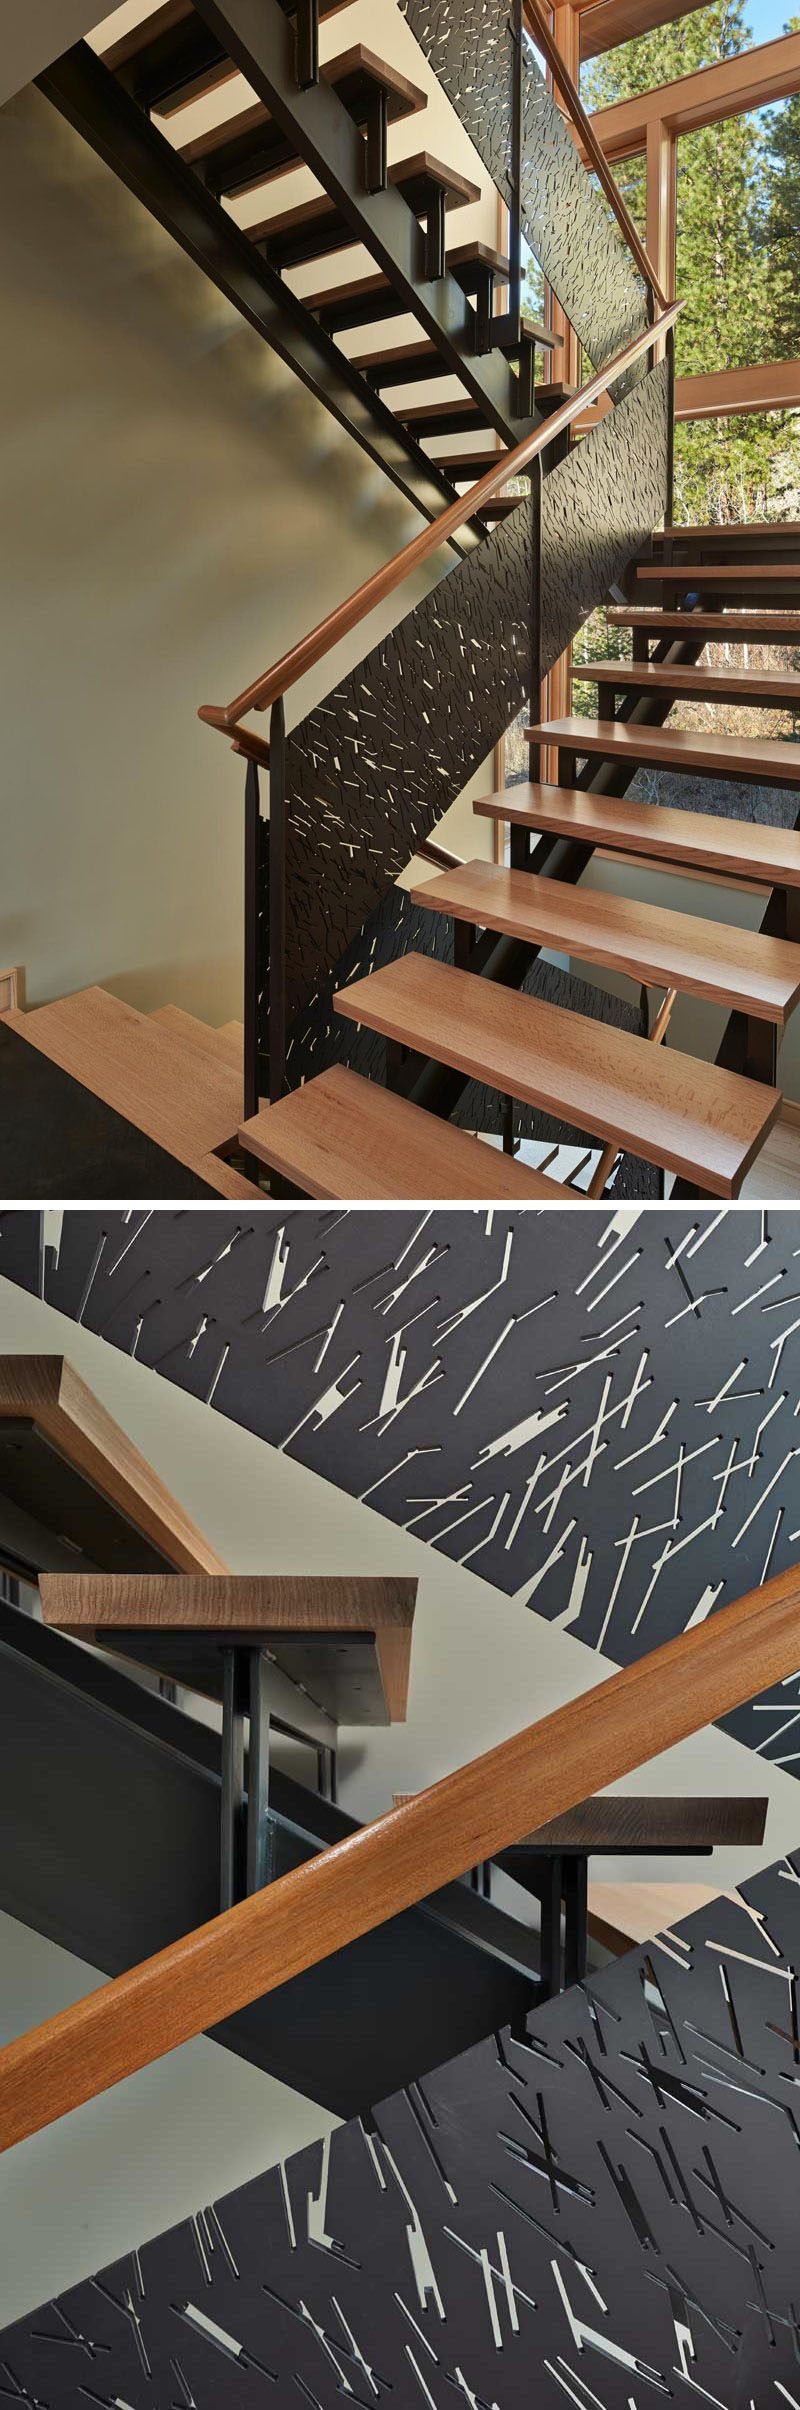 Best 11 Creative Stair Railings That Are A Focal Point In These Modern Houses Metal Stair Railing 640 x 480